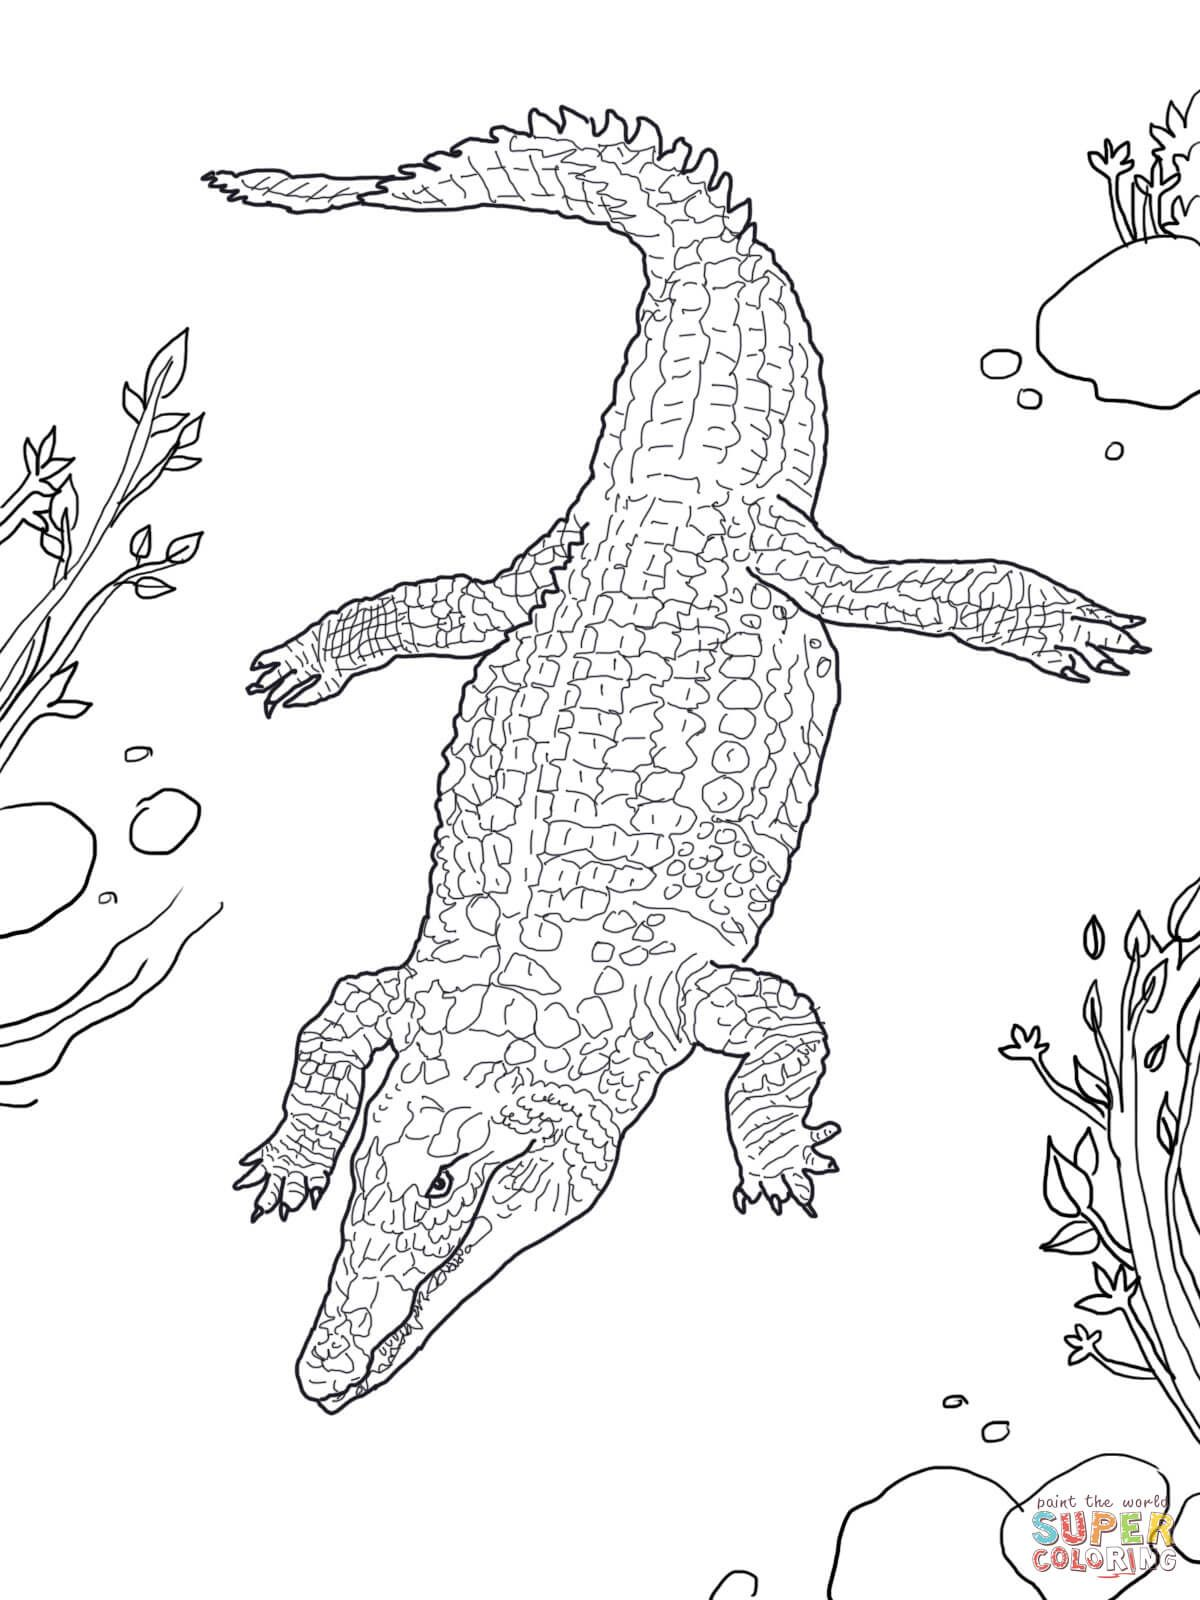 nile-crocodile-coloring-page.jpg (1200×1600)   Coloring Pages ...